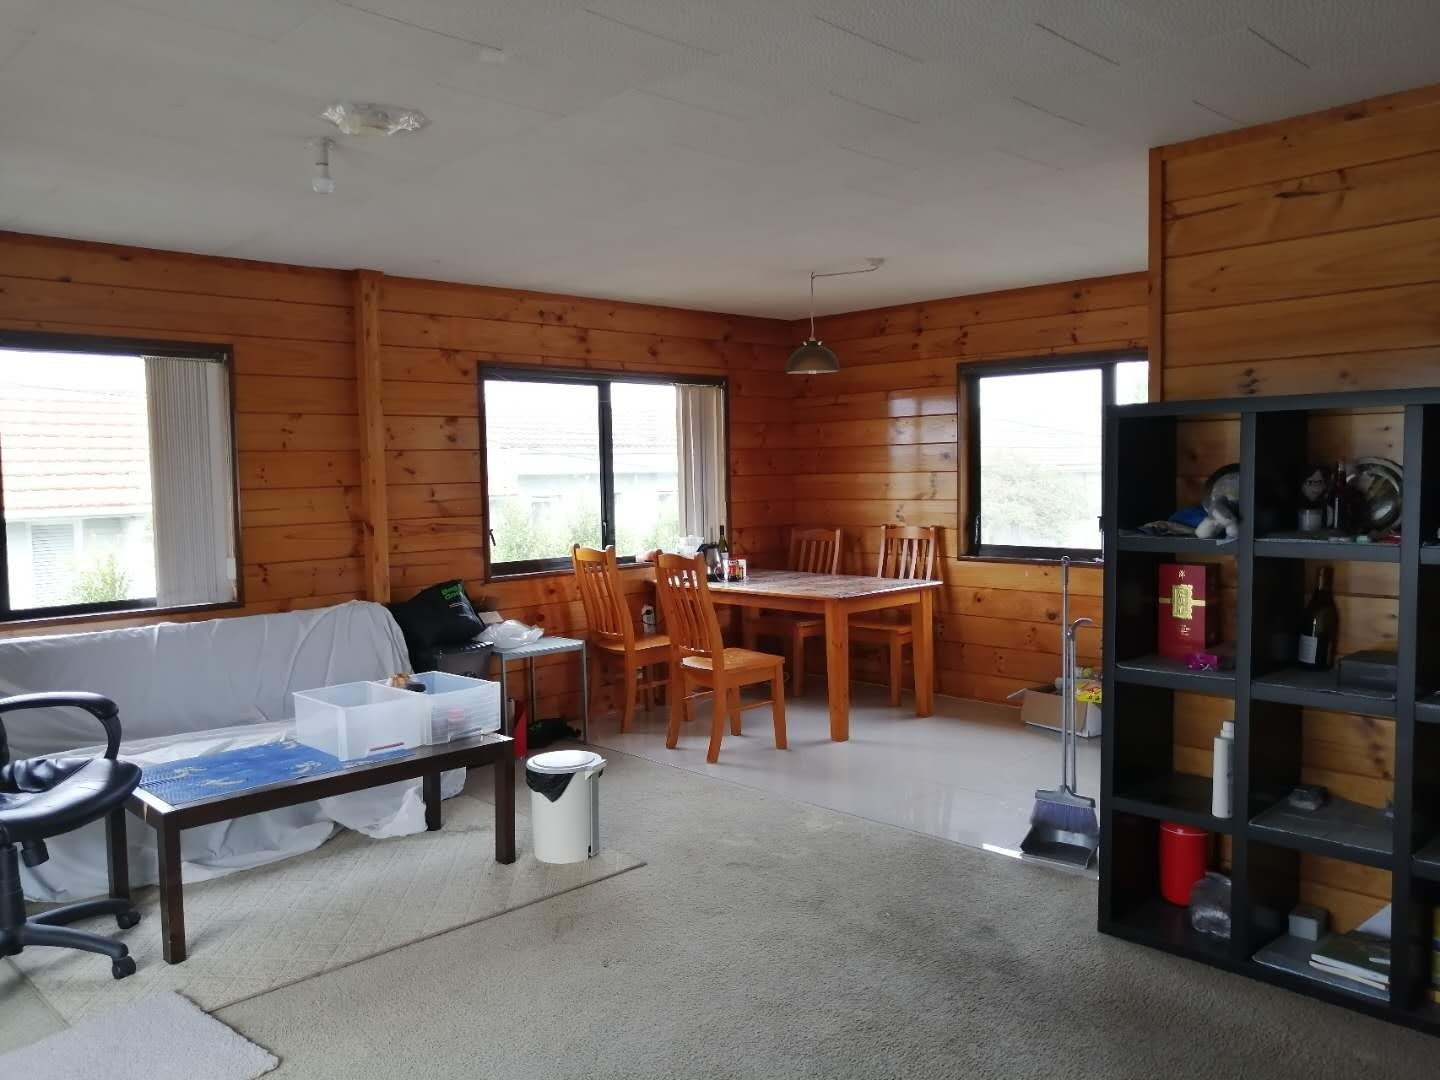 Northcote, 3 bedrooms 41 College Road, Northcote, North Shore City, Auckland